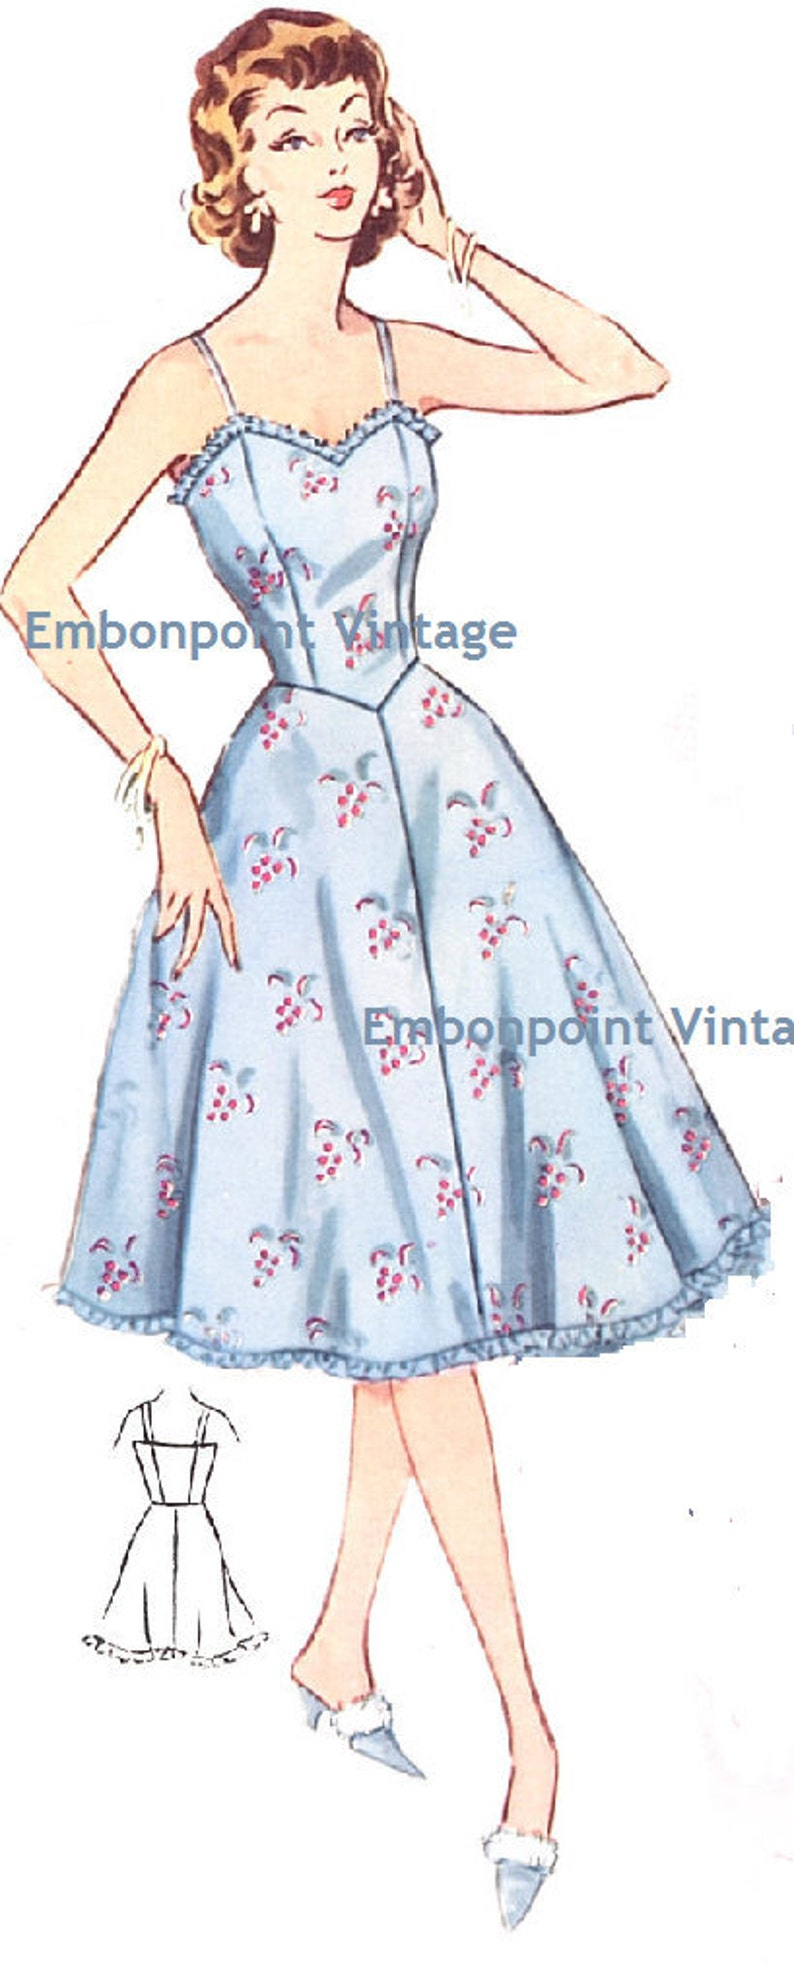 1950s Sewing Patterns | Dresses, Skirts, Tops, Mens Vintage 1950s Petticoat Pattern - PDF - Pattern No 214 Melanie Petticoat $7.30 AT vintagedancer.com